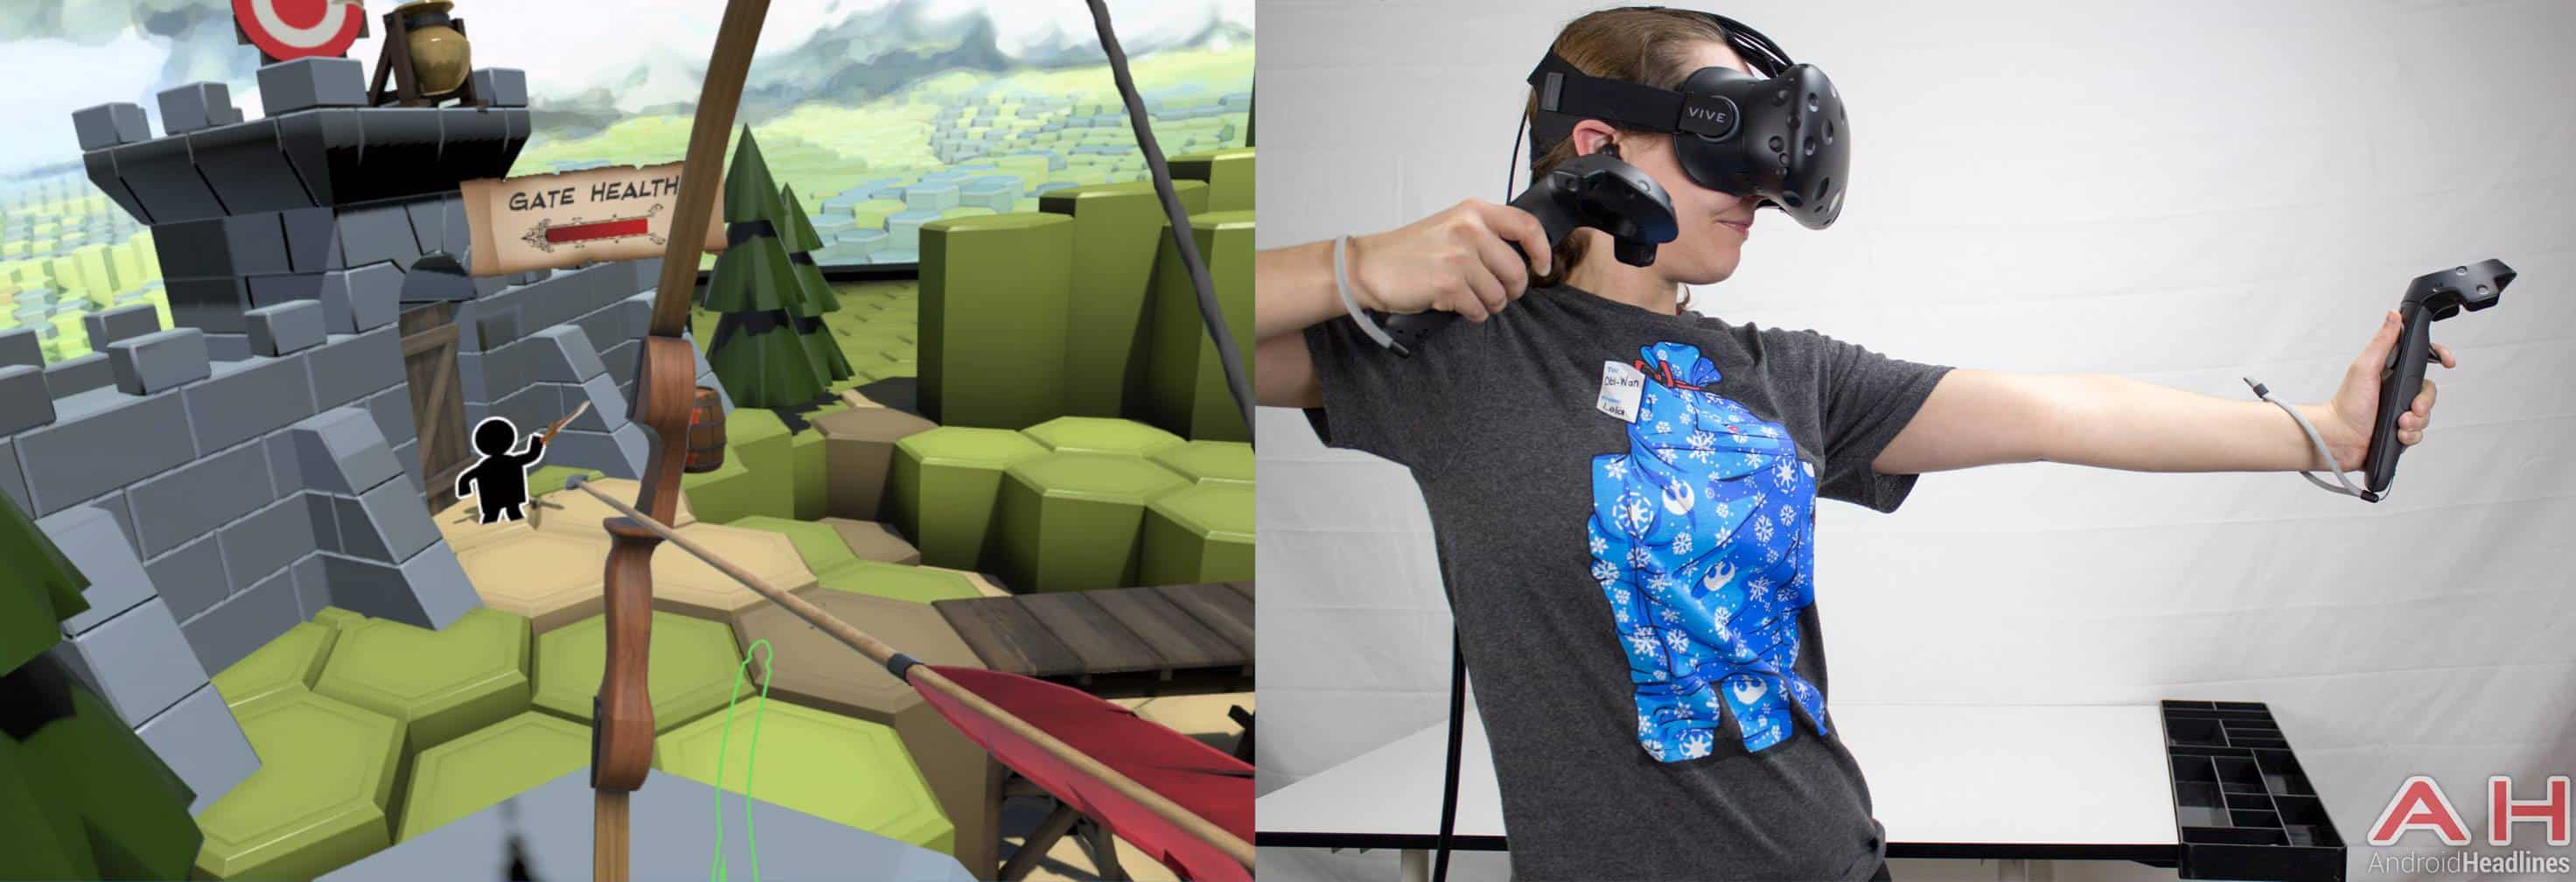 HTC-Vive-AH-NS-the-lab-valve-archery